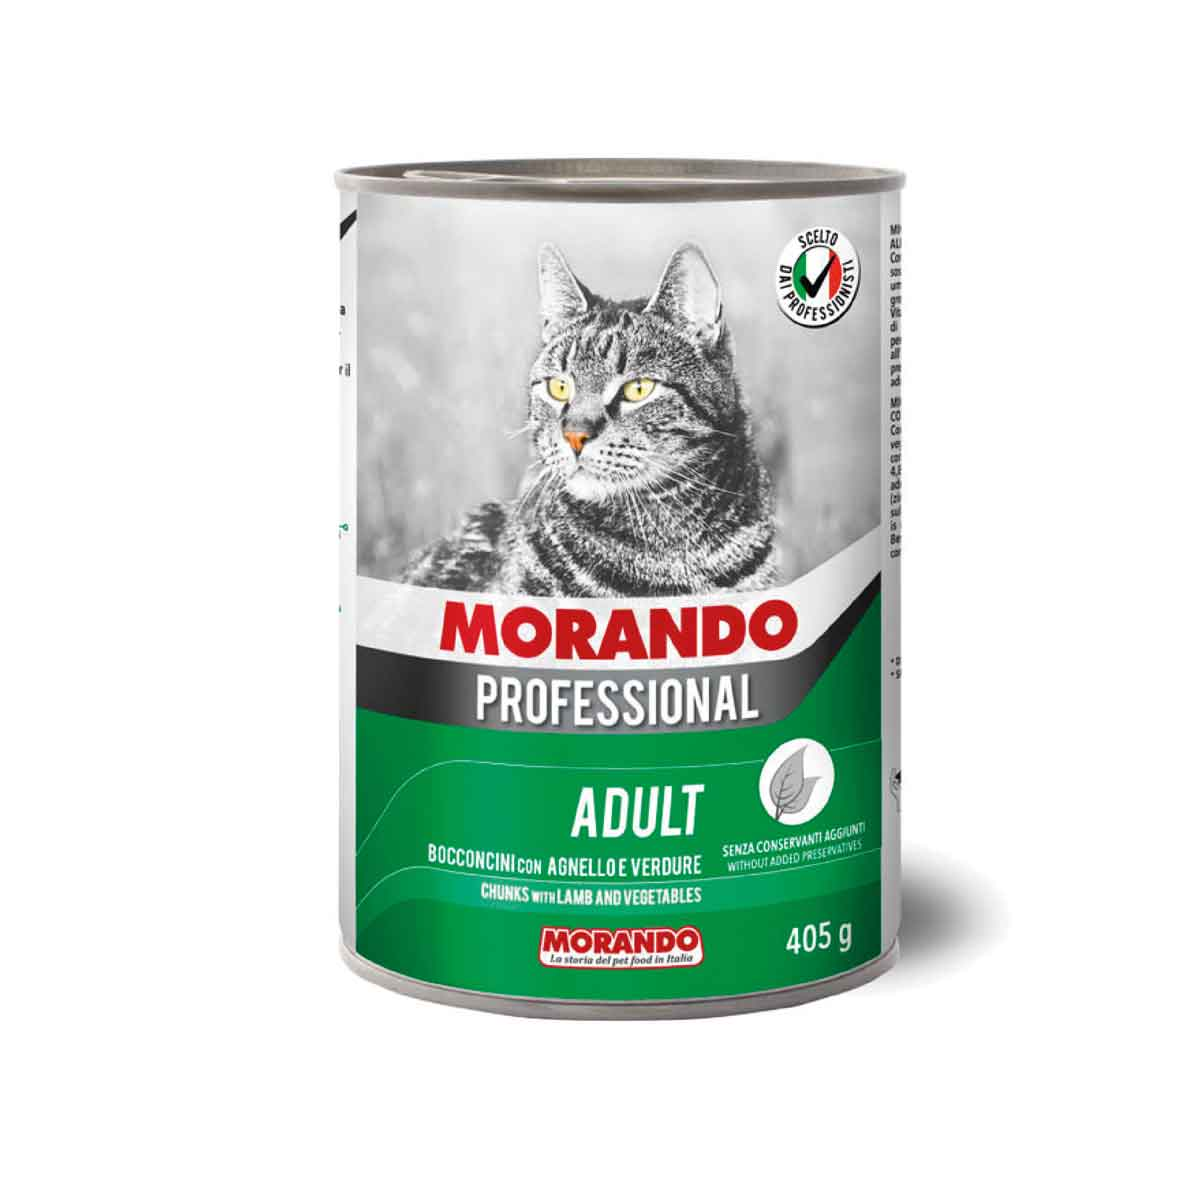 Morando Professional Cat 405g